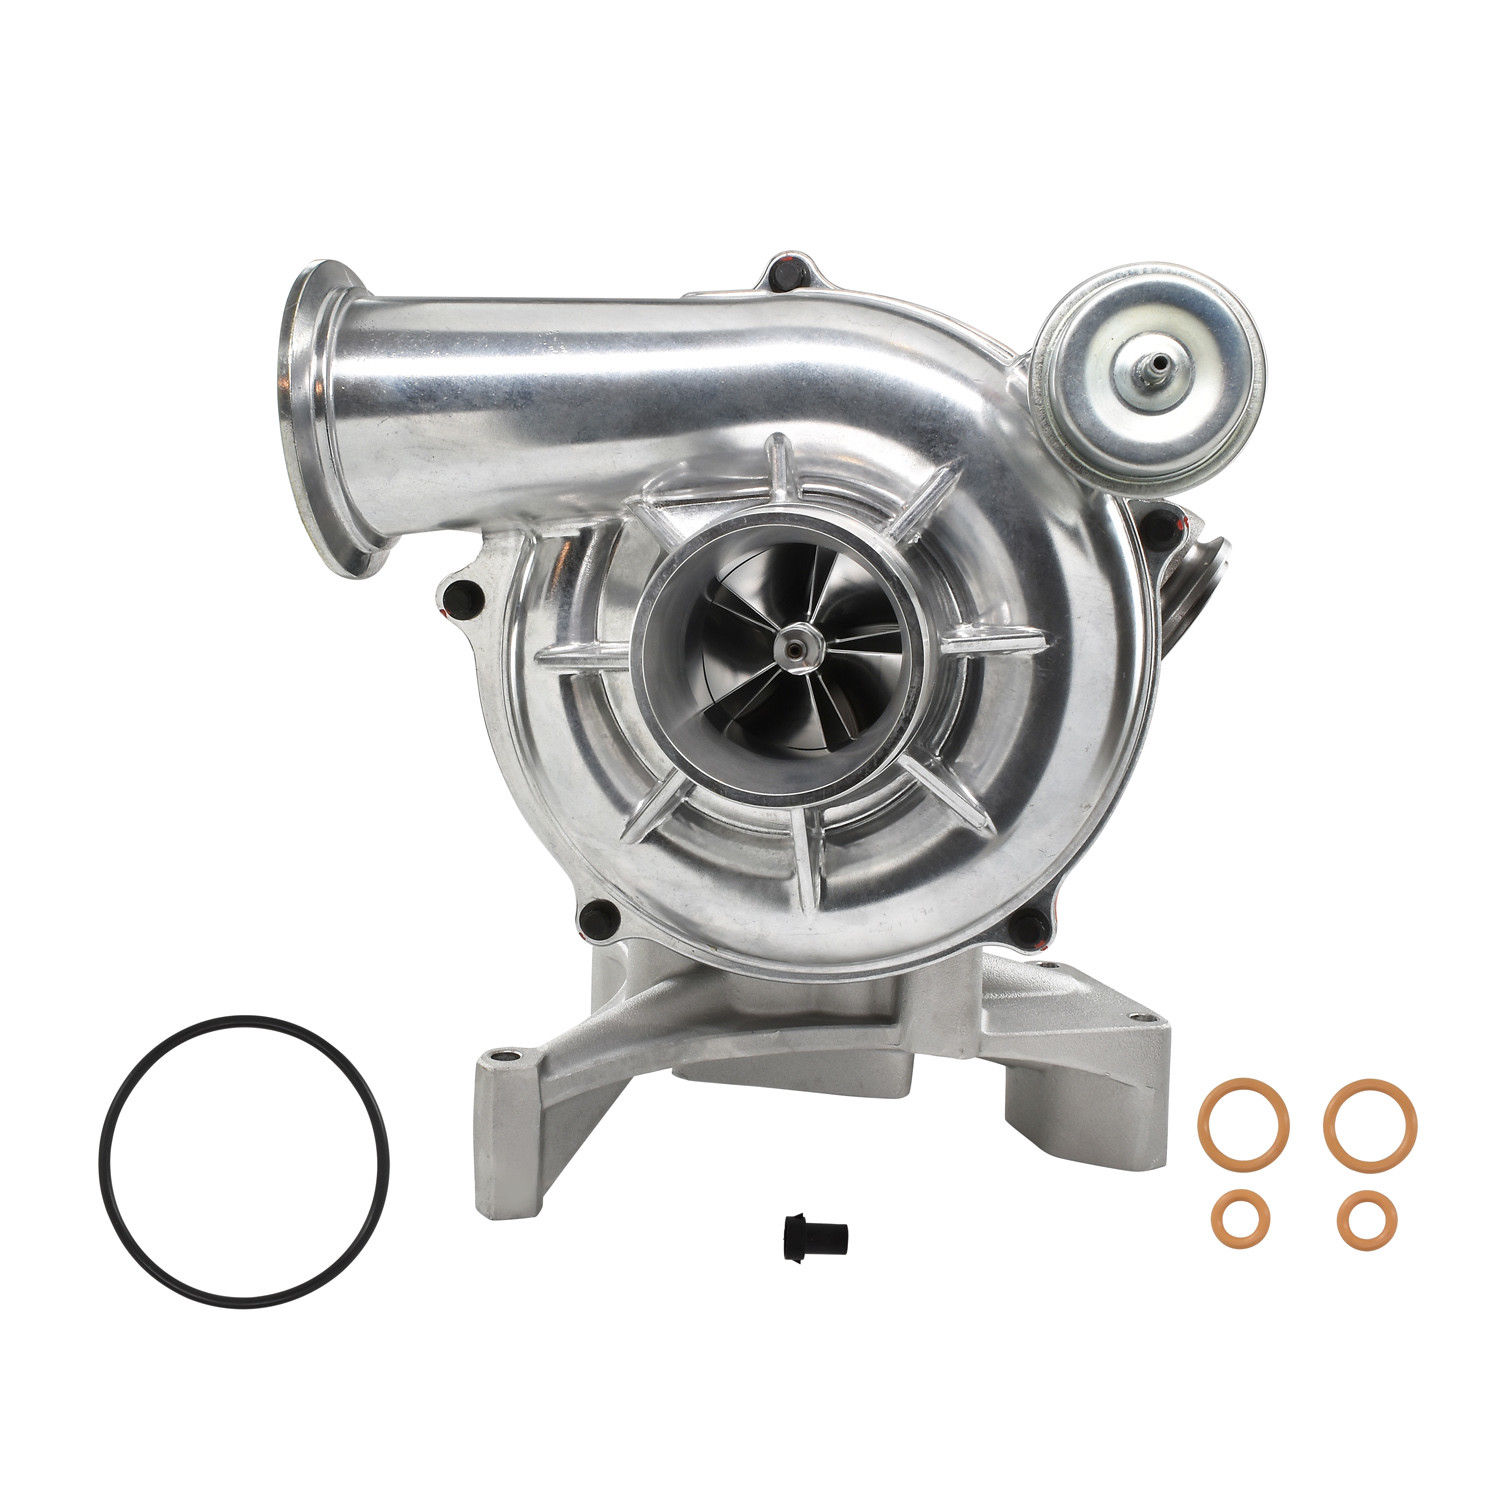 GTP38 High Performance Turbocharger 5+5 Billet Wheel Plain For 99.5-03 7.3L Ford Powerstroke Diesel